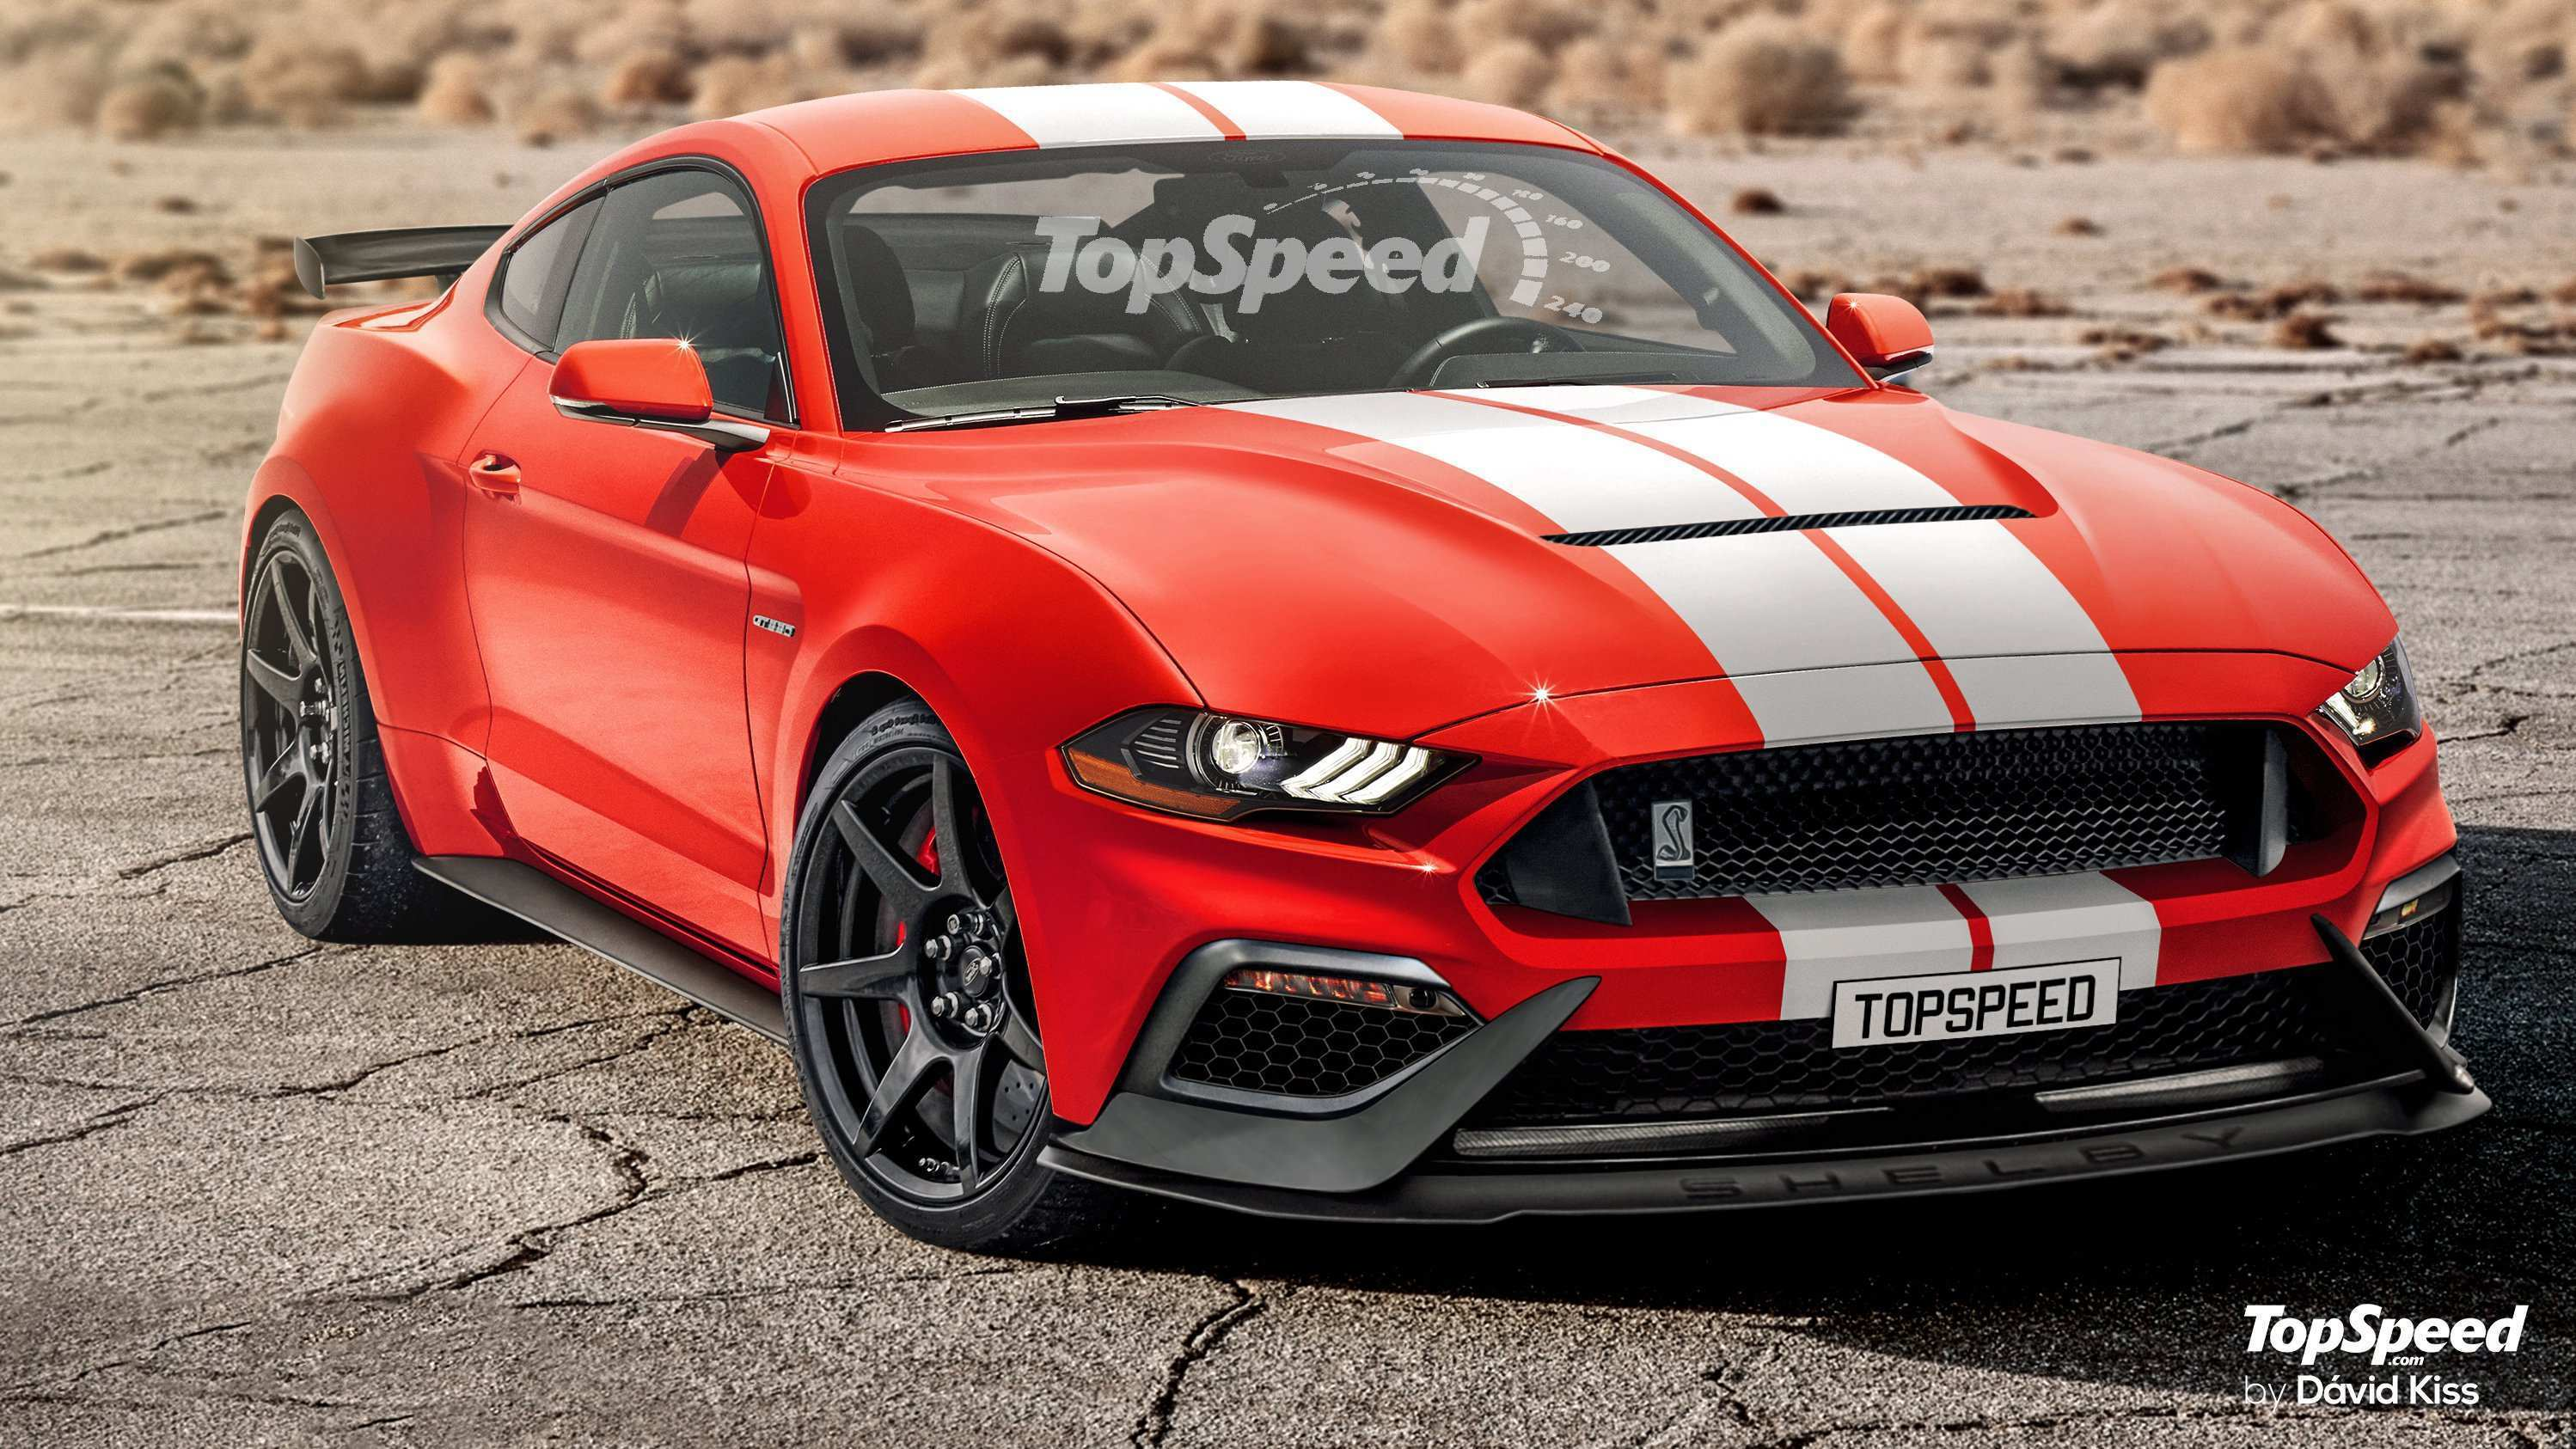 64 Best Review 2019 Ford Mustang Gt350 Research New for 2019 Ford Mustang Gt350